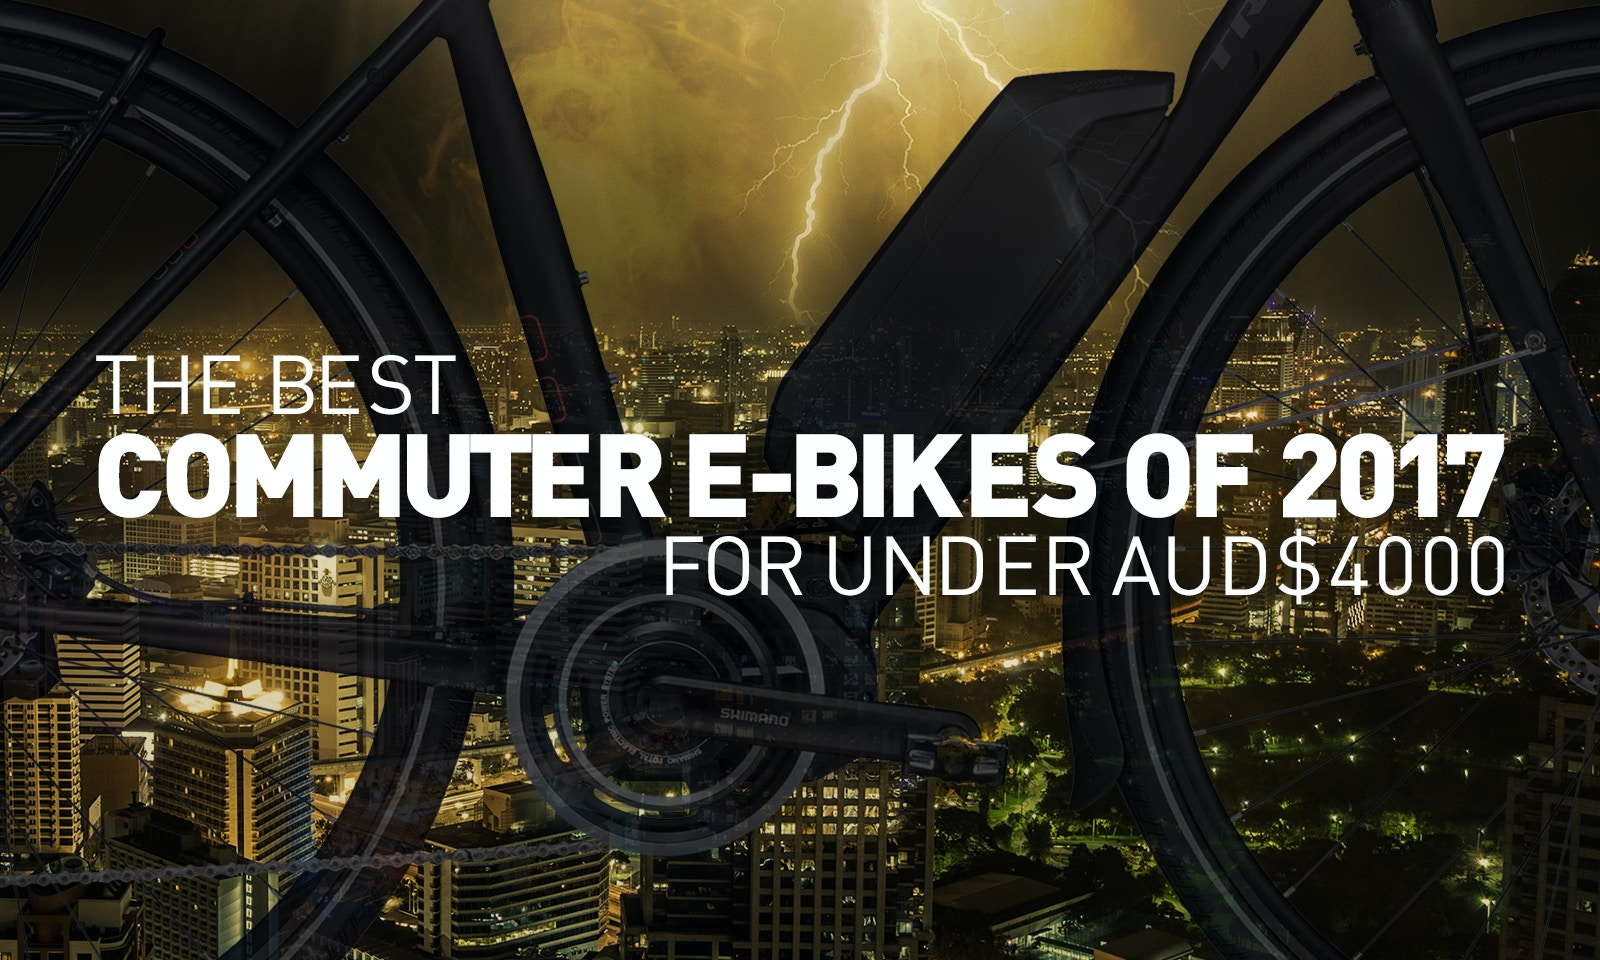 Best Commuter E-Bikes of 2017 for Under AUD$4,000